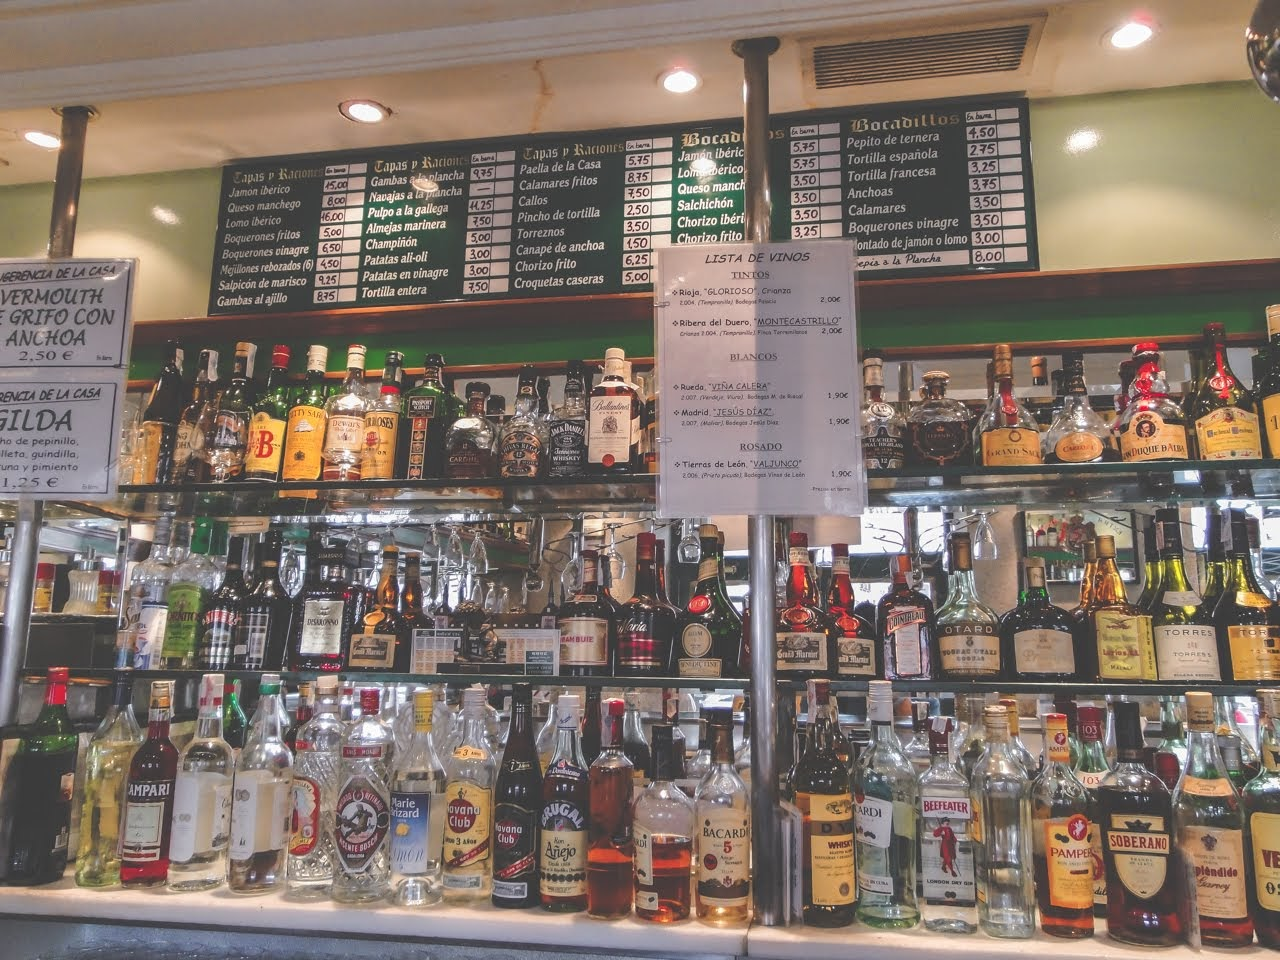 This bar has plenty of bottles of liquor and tapas to choose from